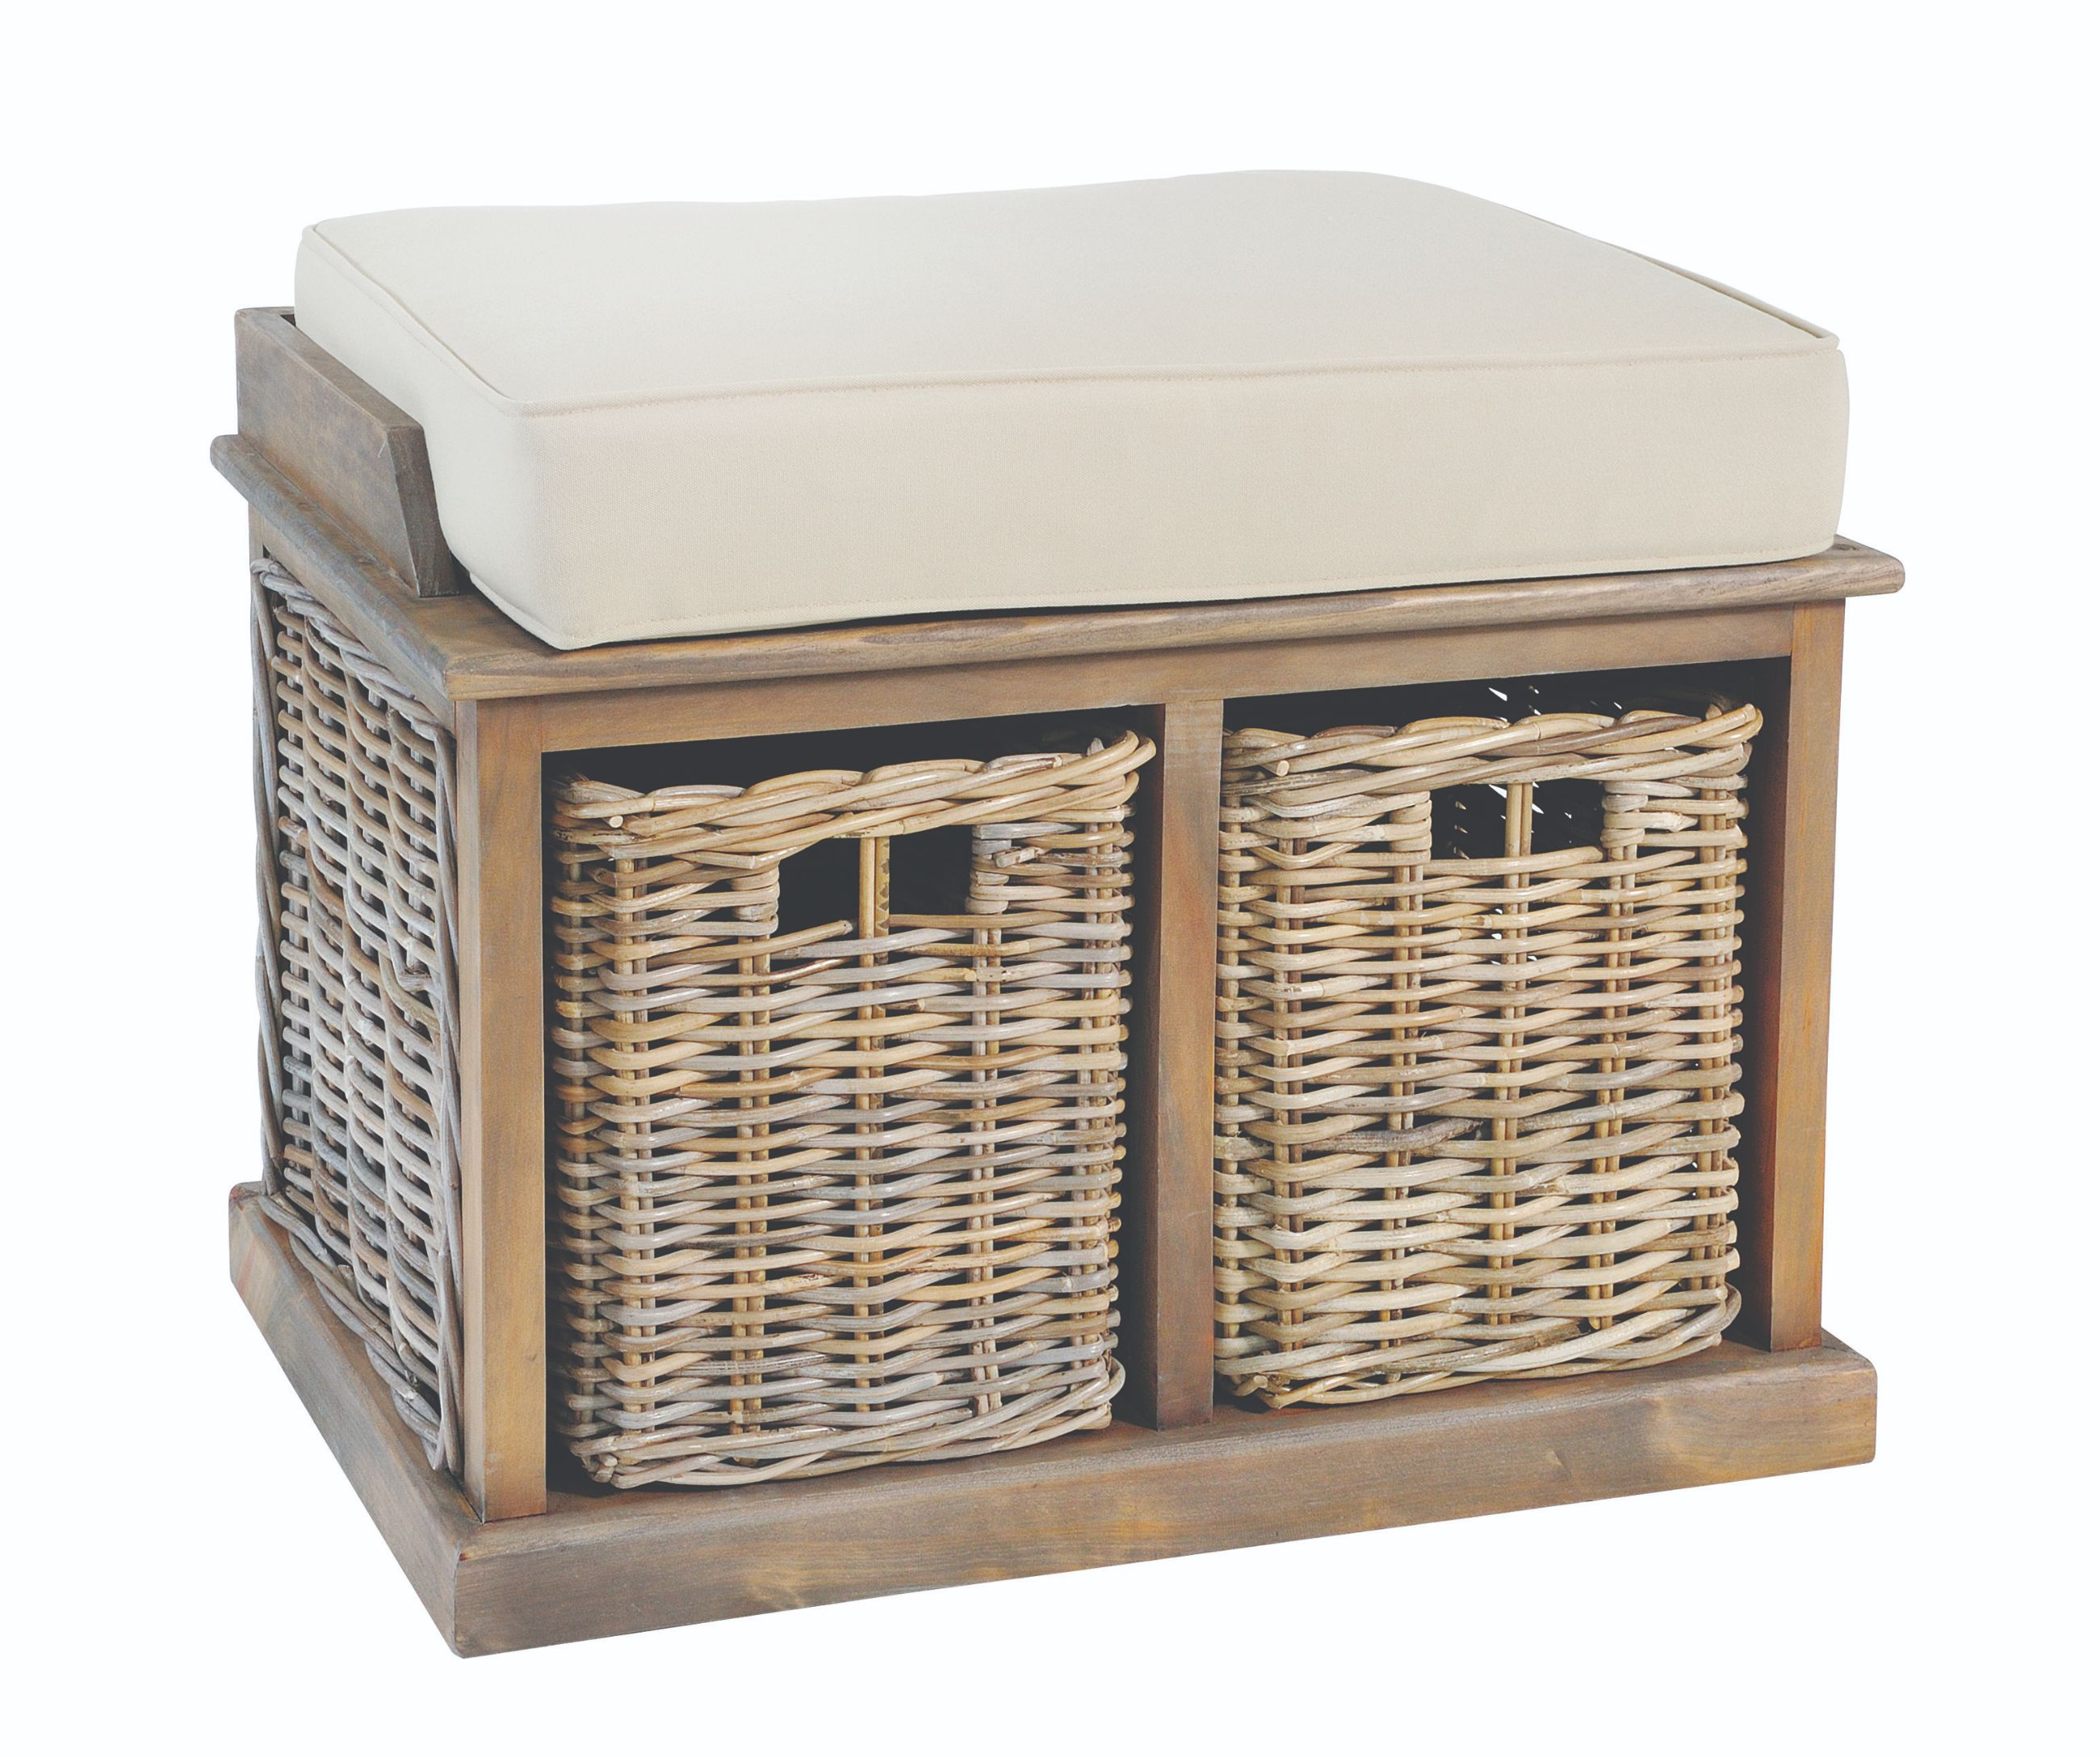 MAYA Grey Wash 2 Rattan Basket Storage Bench